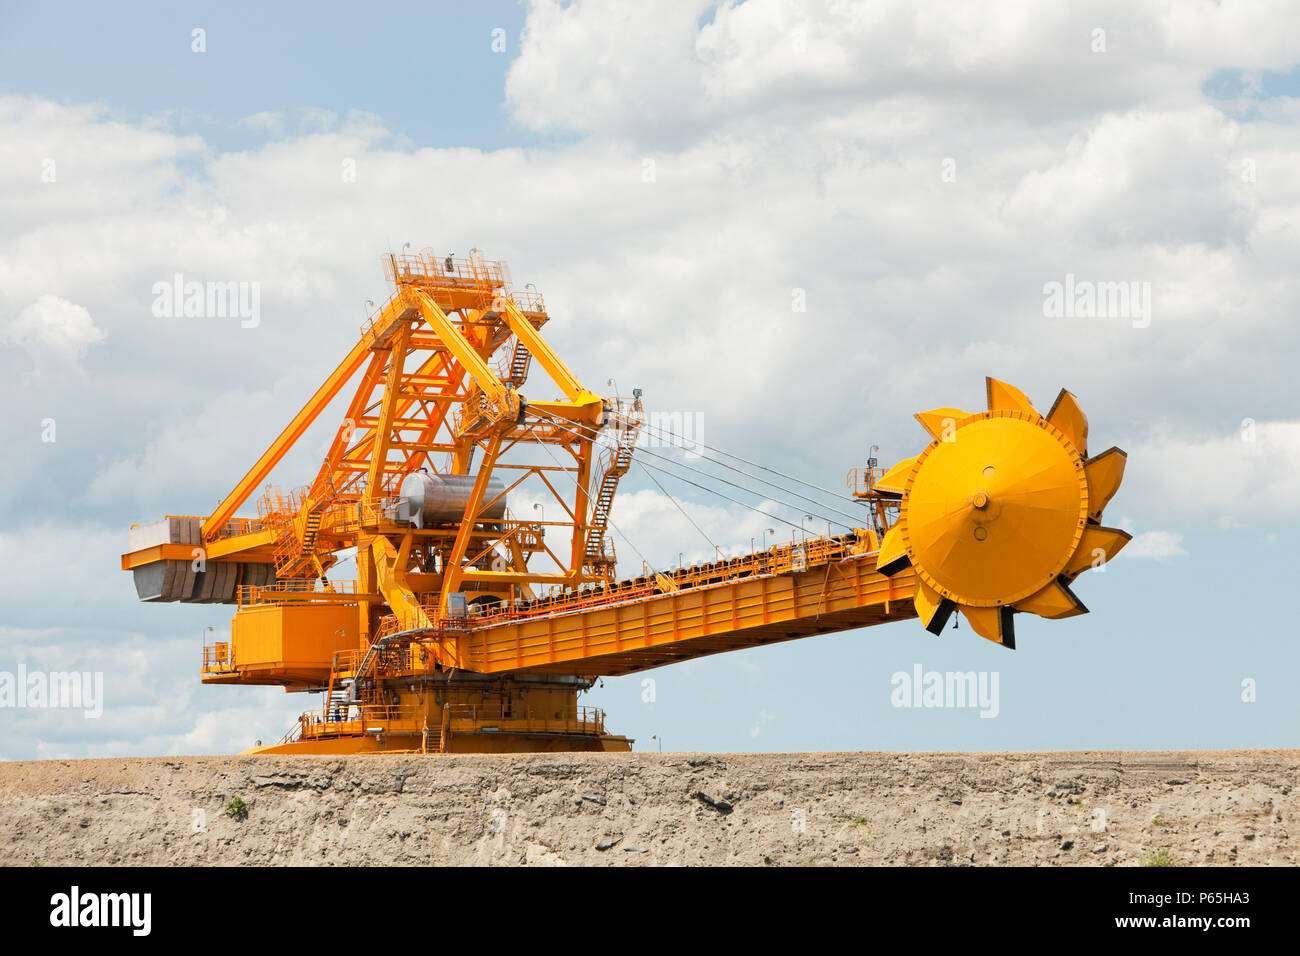 Coal moving machinary at Port Waratah in Newcastle which is the worlds largest coal port. Coal from open cast coal mines in the Hunter Valley is expor - Stock Image